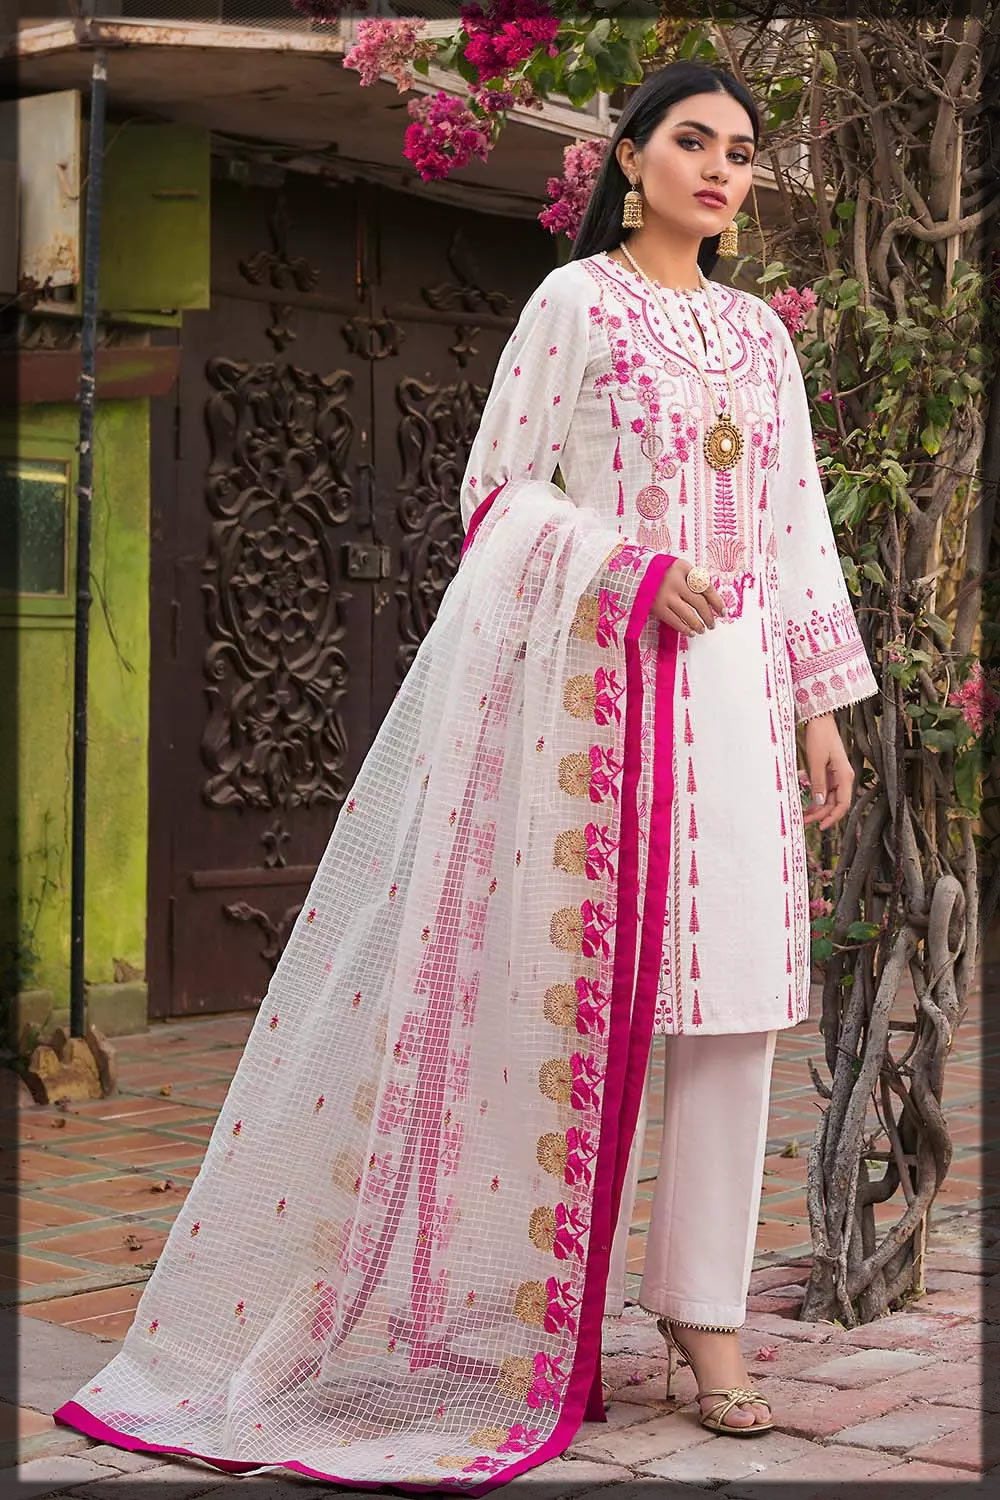 white and pink luxury lawn dress